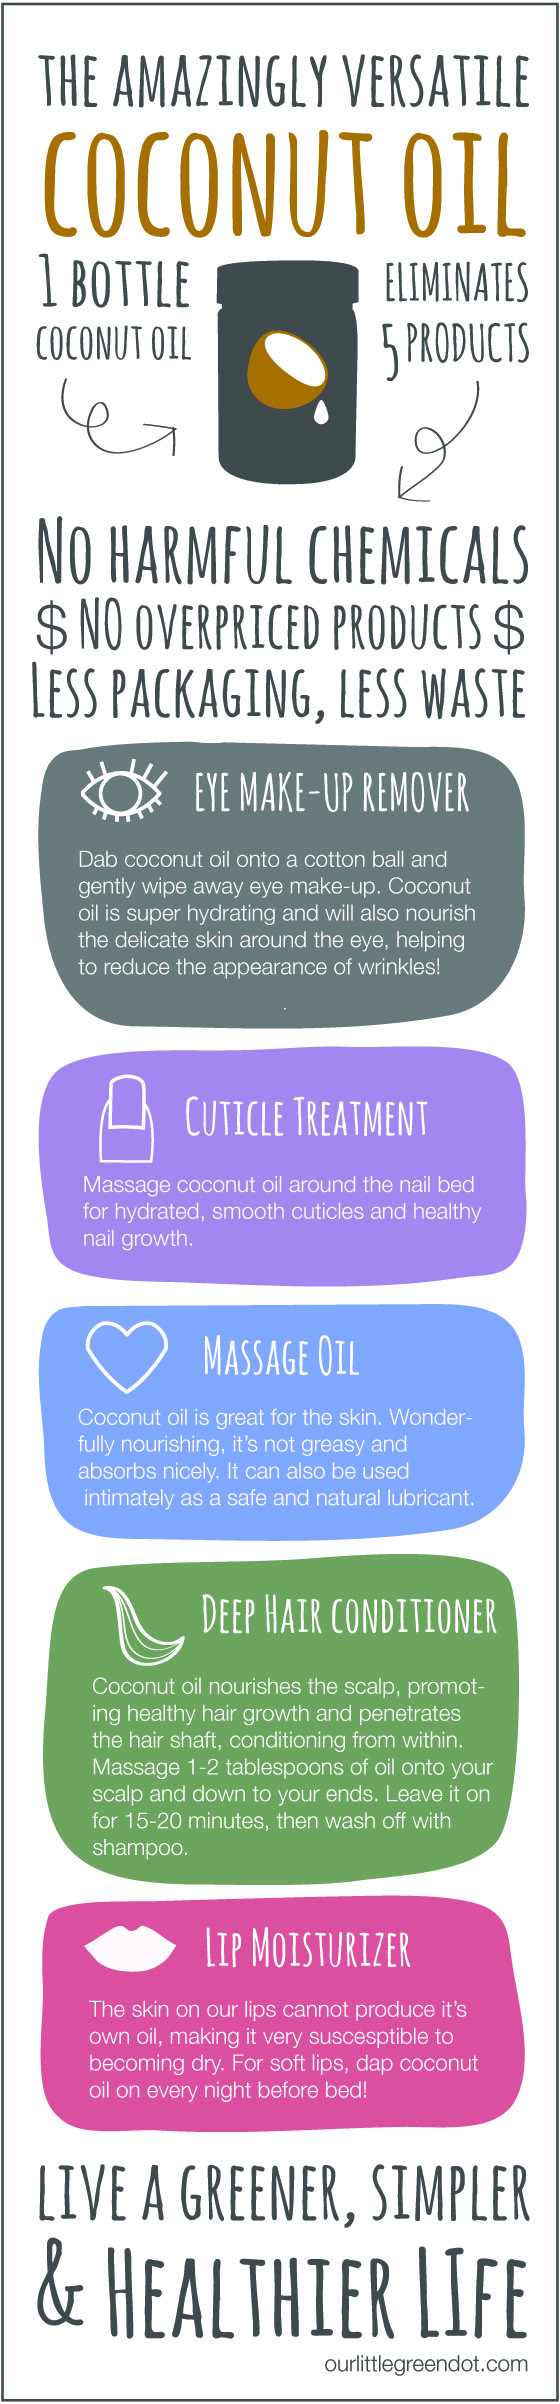 Coconut oil infographic: 5 ways to use your coconut oil